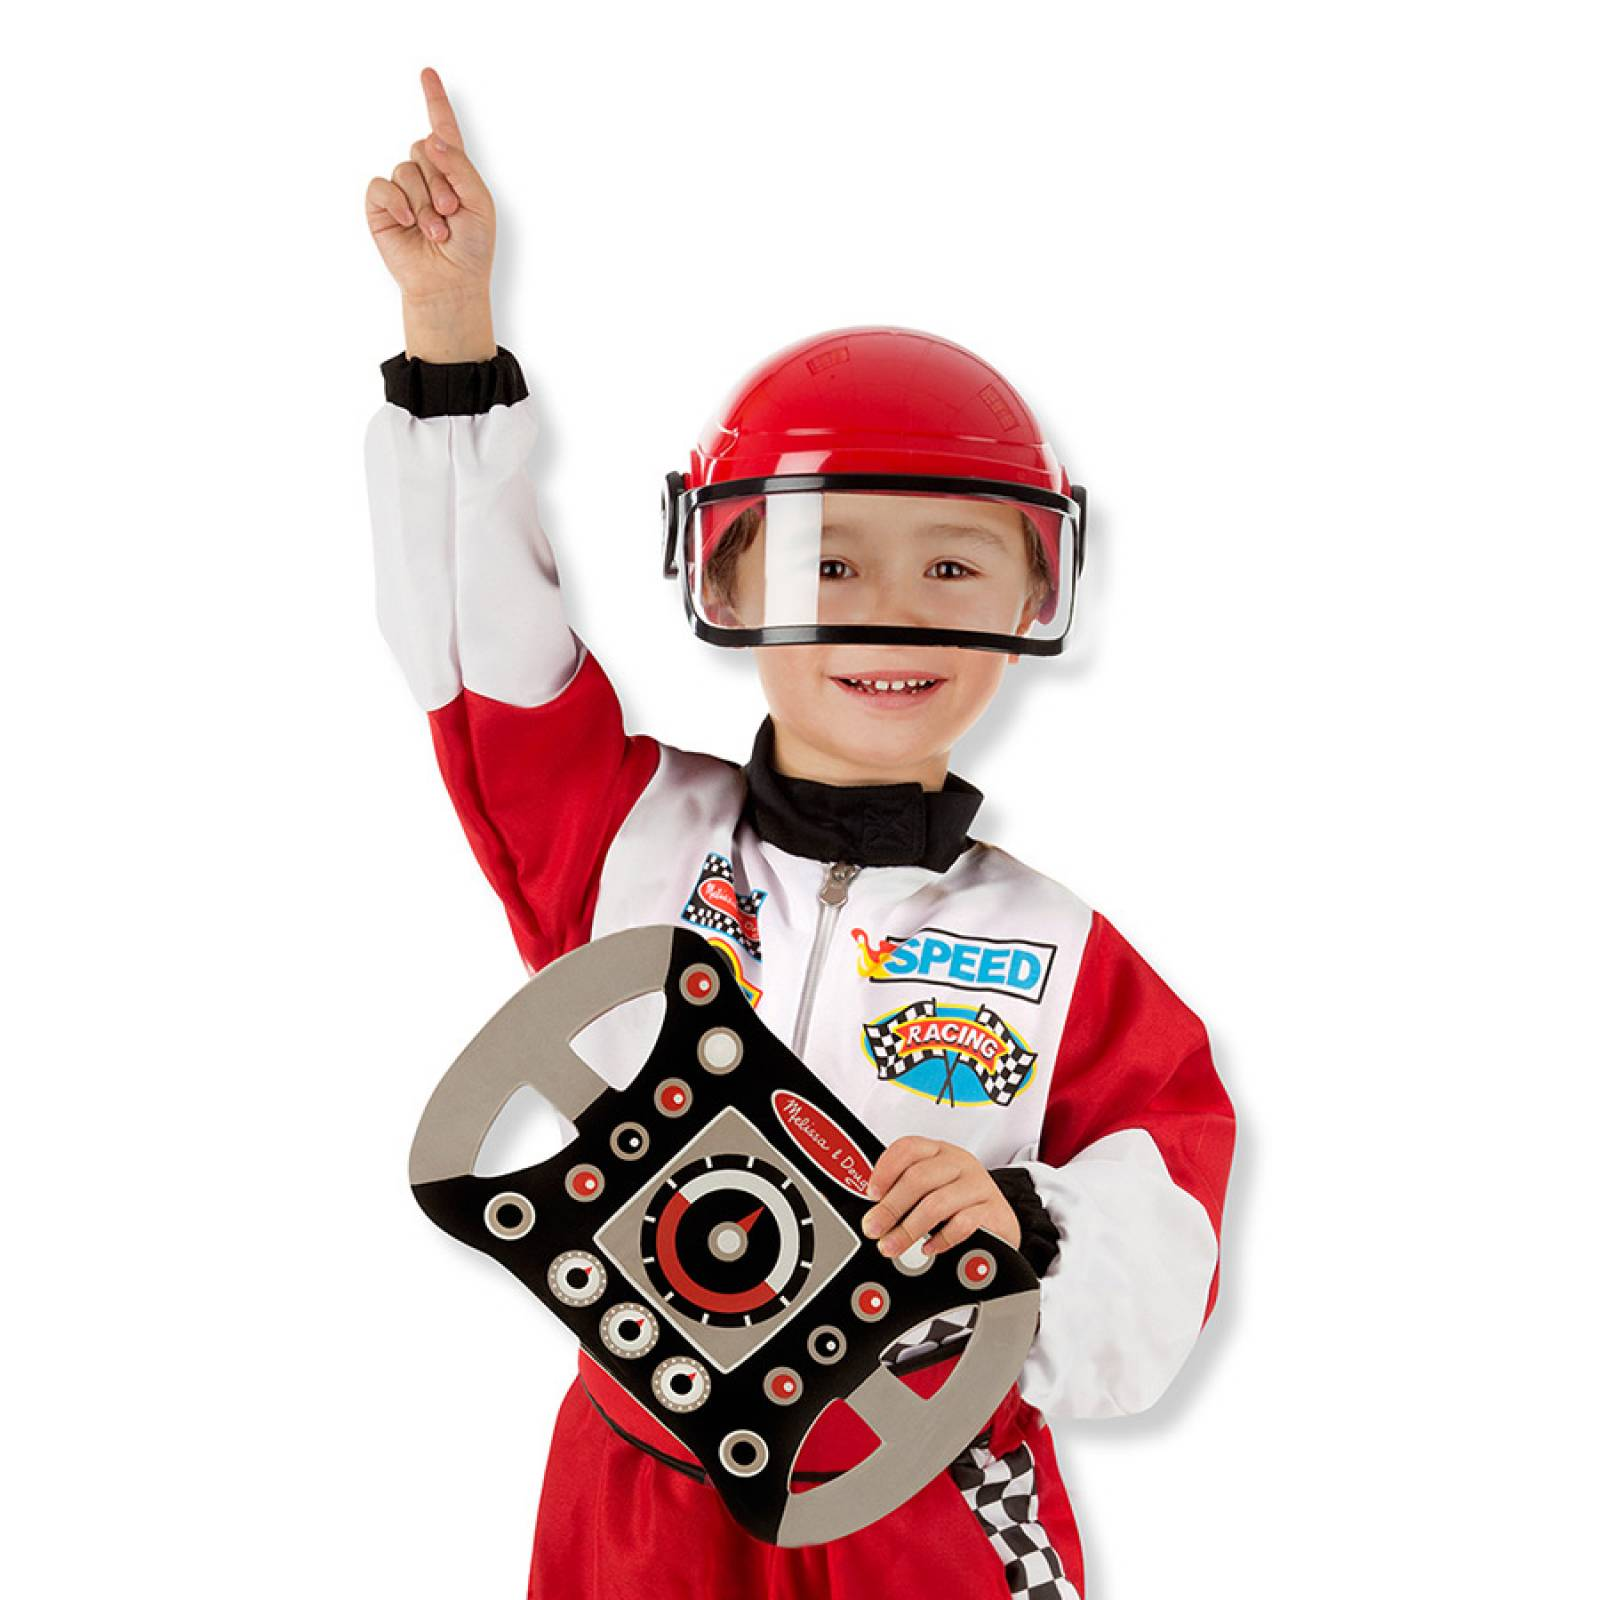 Racing Car Driver Fancy Dress Role Play Costume Set thumbnails